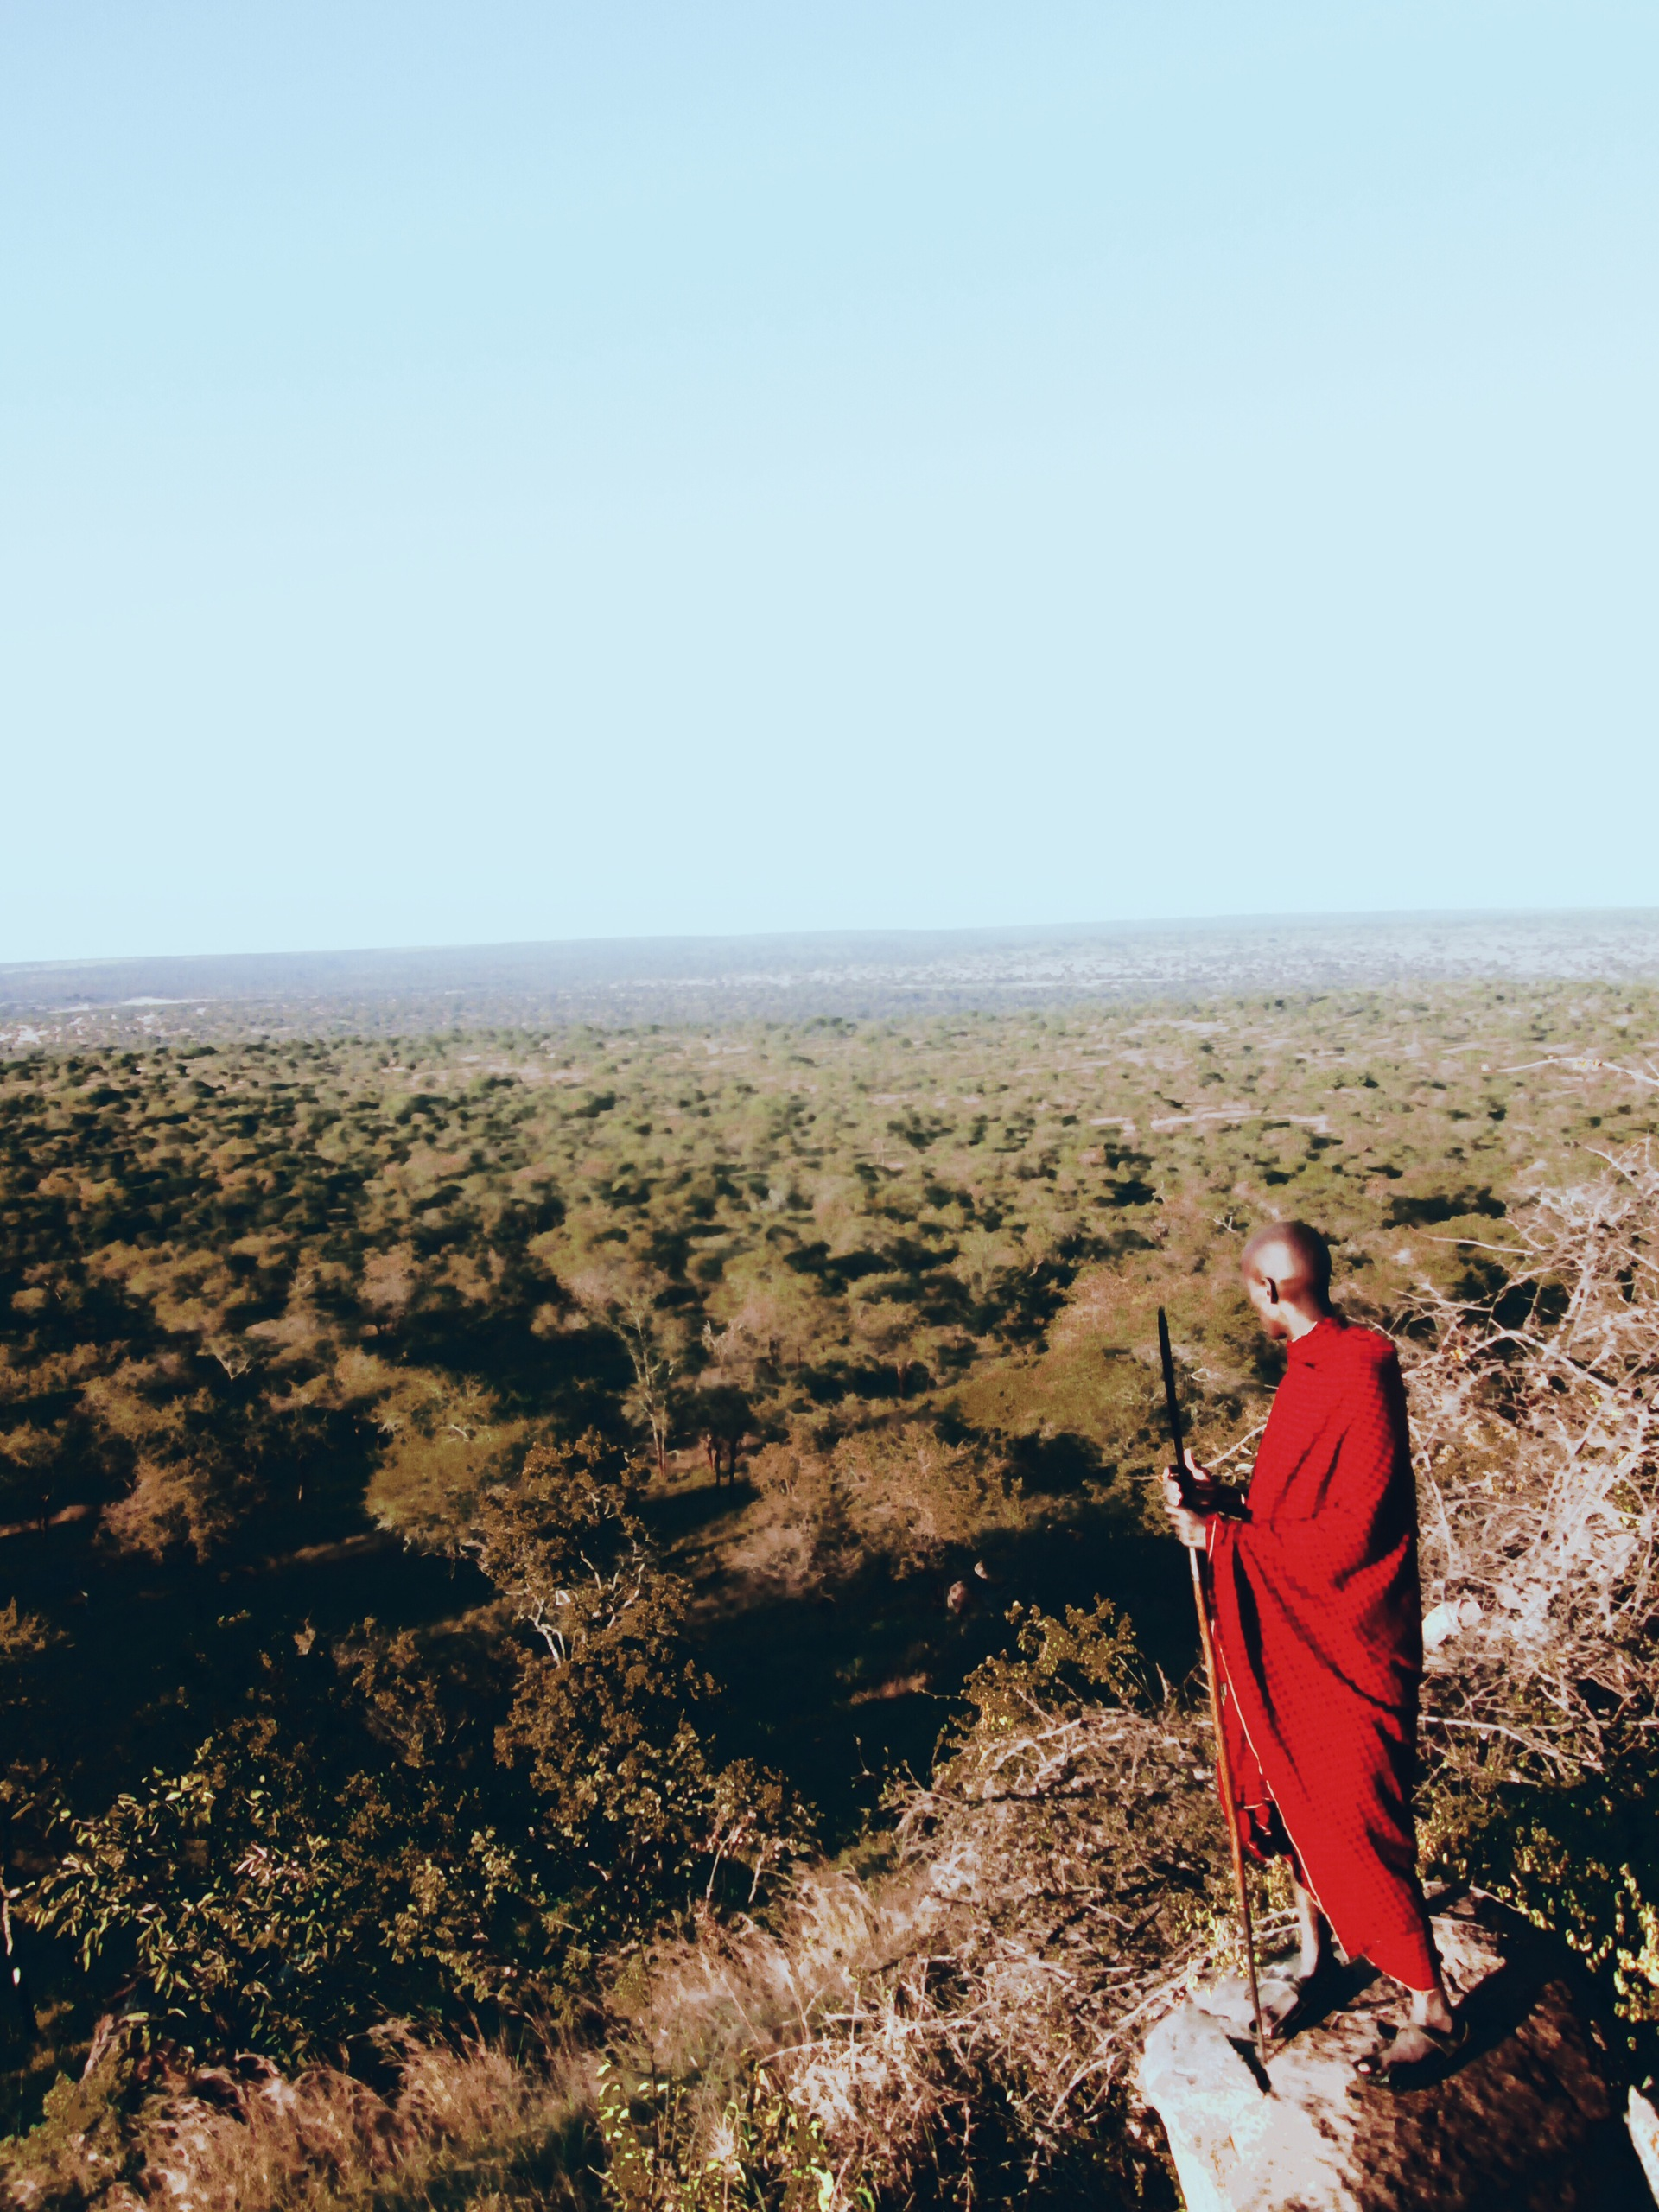 people | one, landscape, outdoors, adult